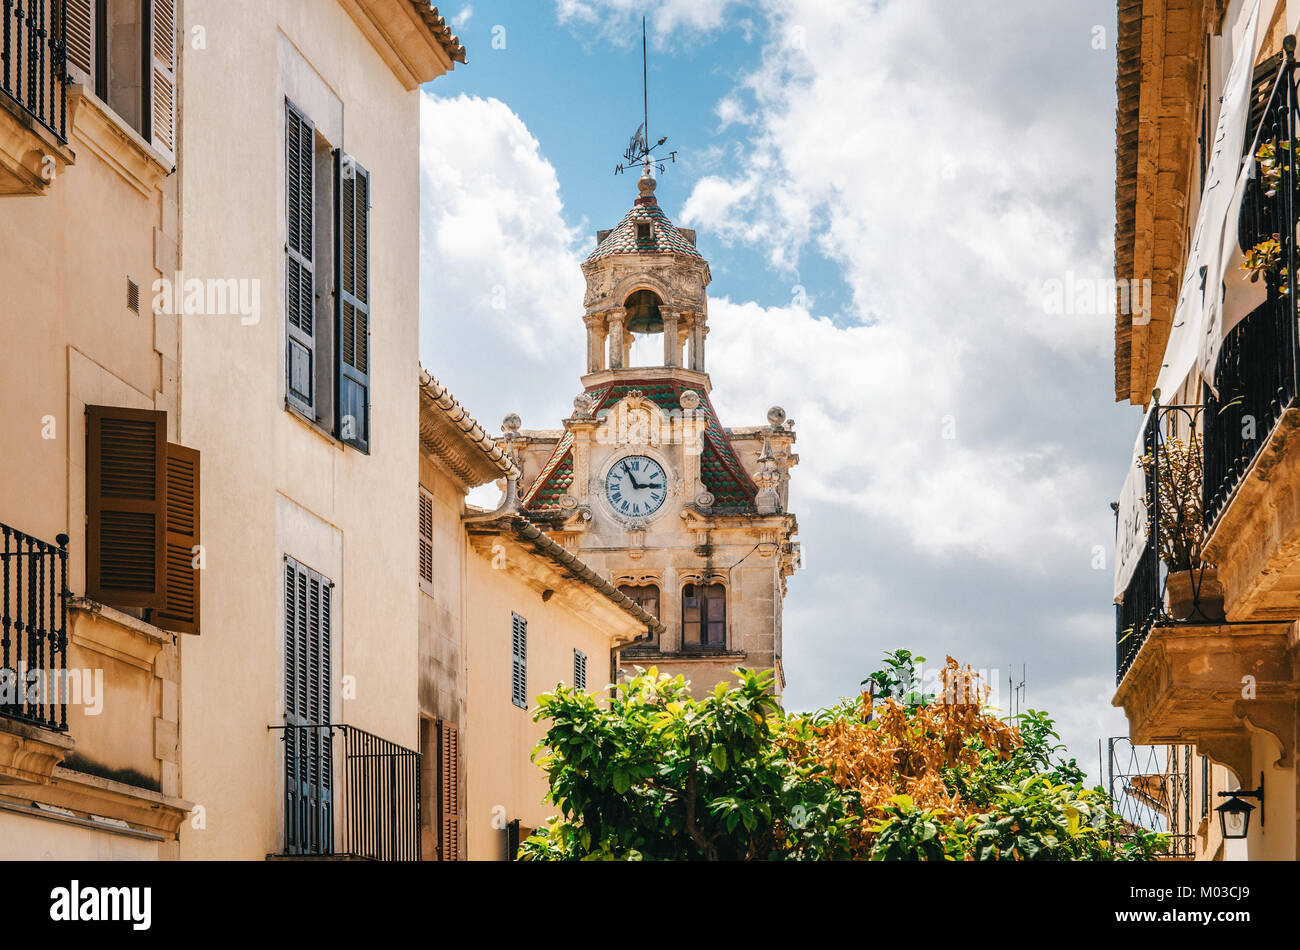 Architecture of Majorca. The tower with big clock of City town hall in Old Town of Alcudia, Mallorca, Balearic island, Stock Photo